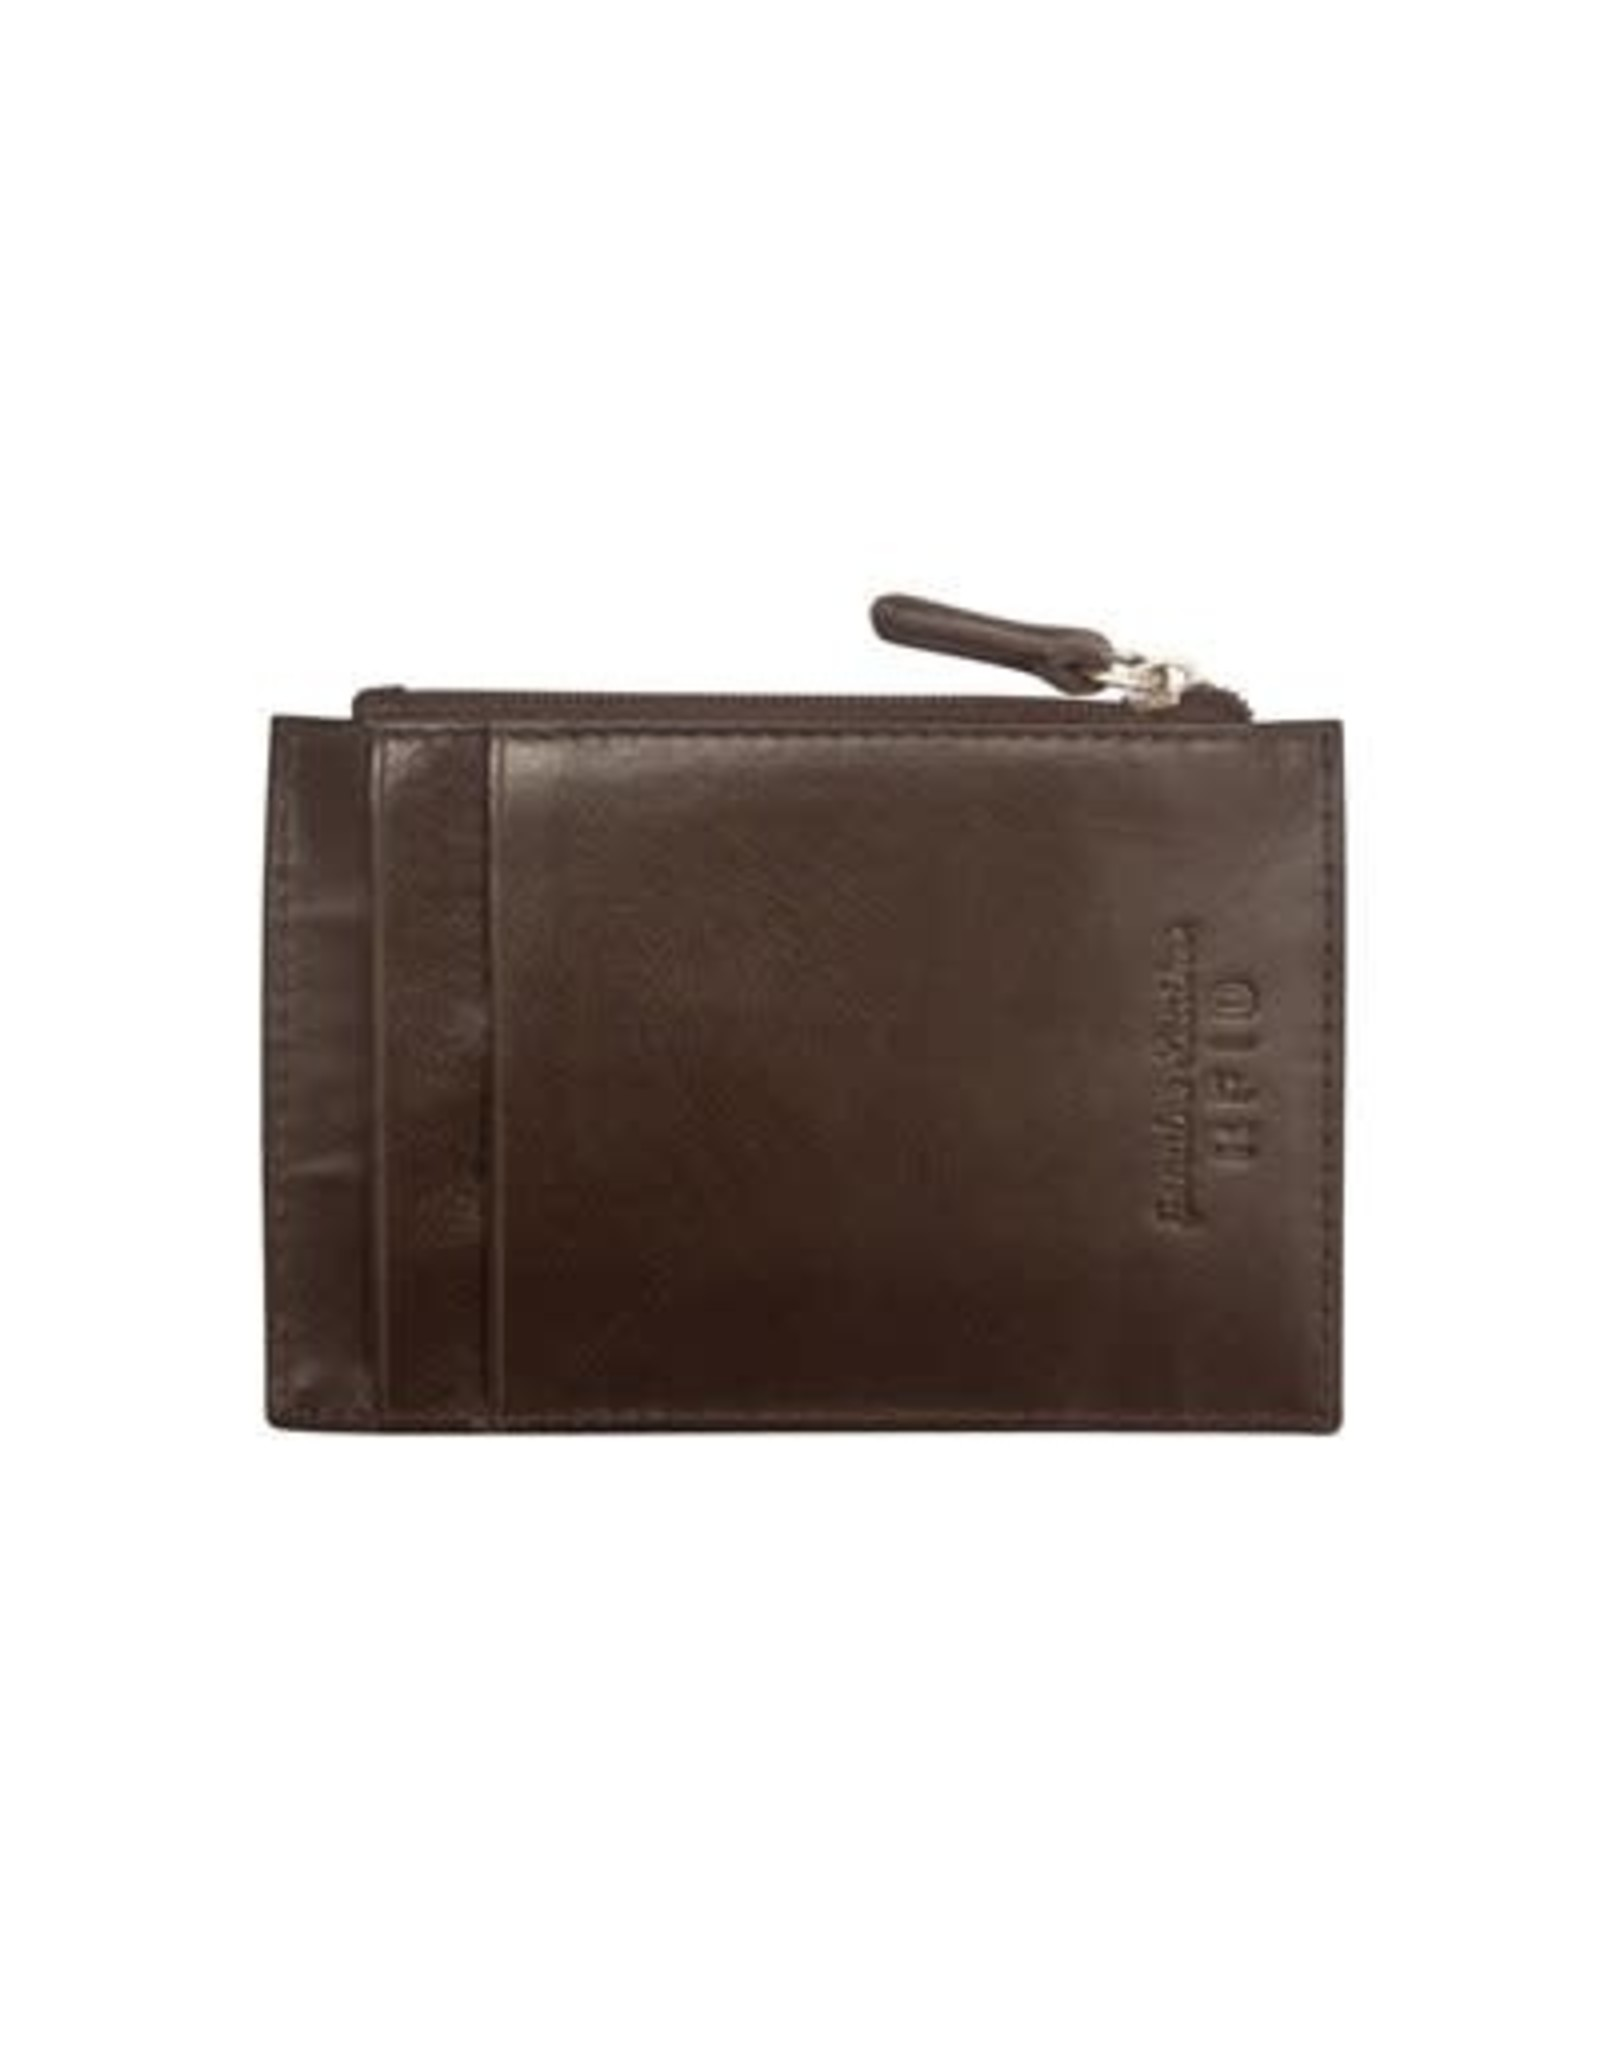 Leather Handbags and Accessories 7416 Brown - RFID Card Holder